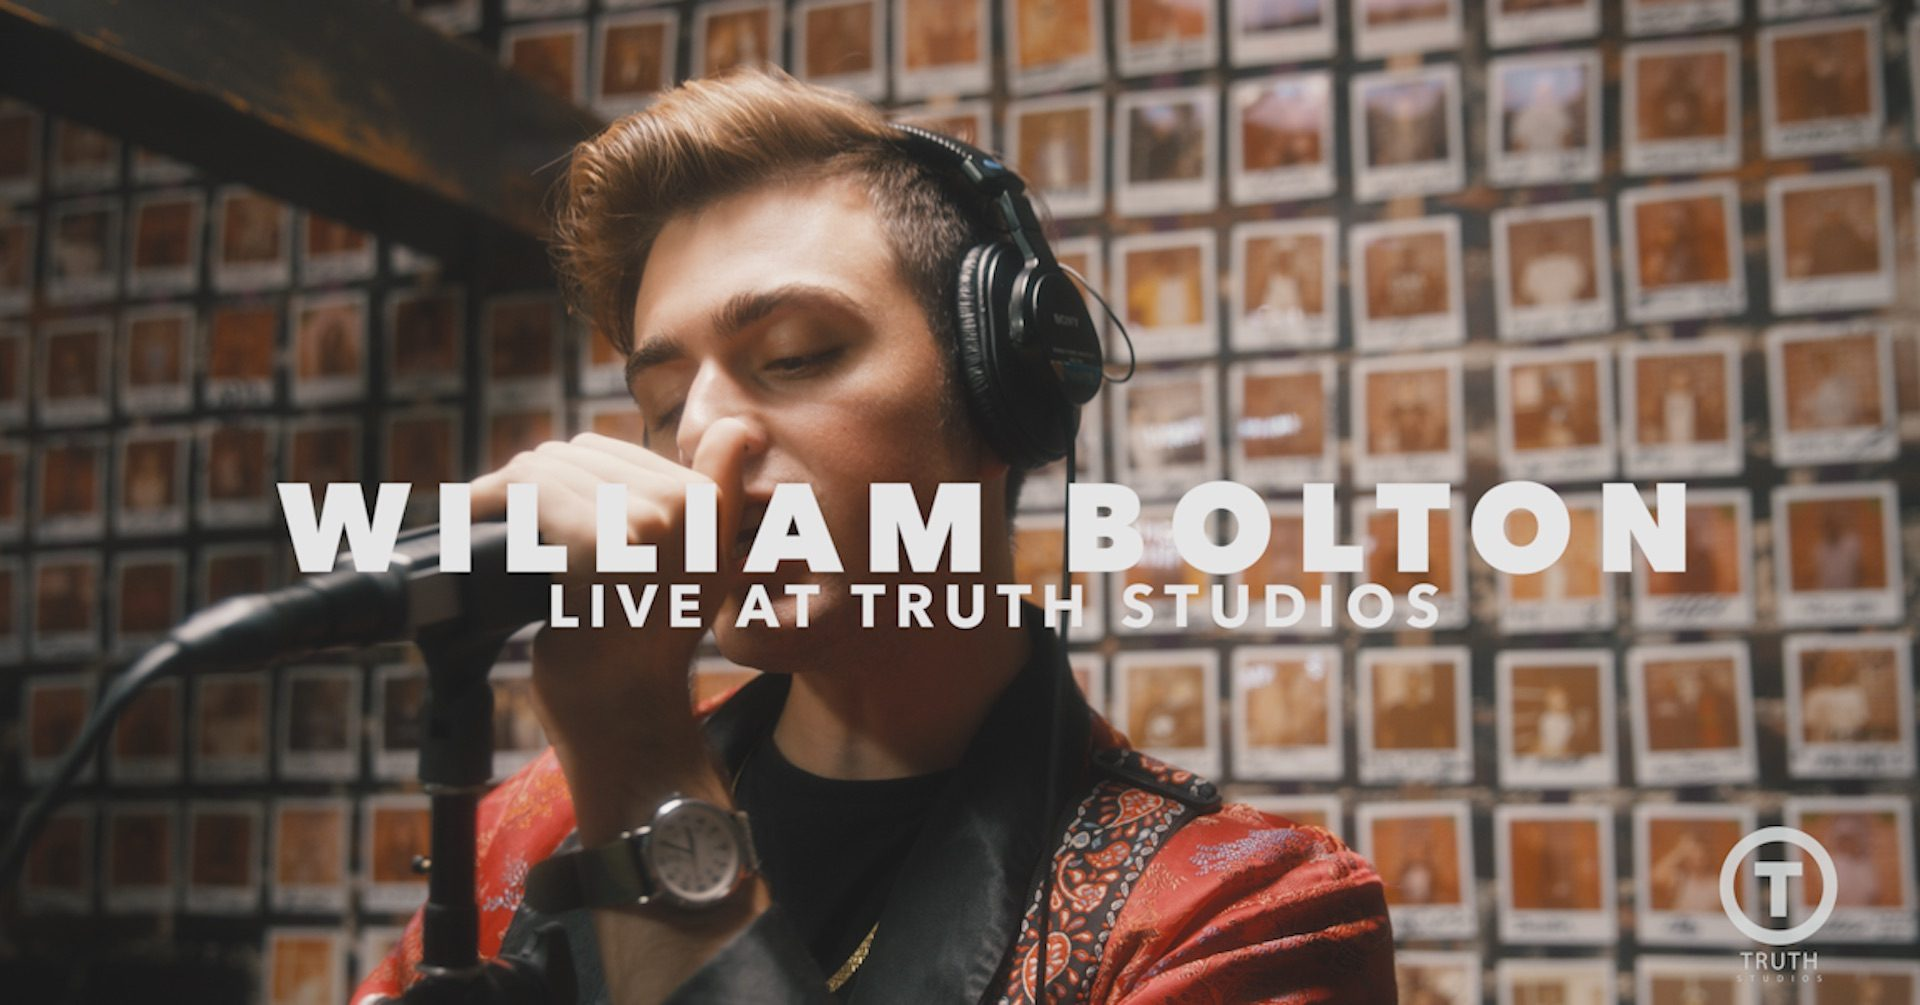 William Bolton - Faded (Live at Truth Studios)